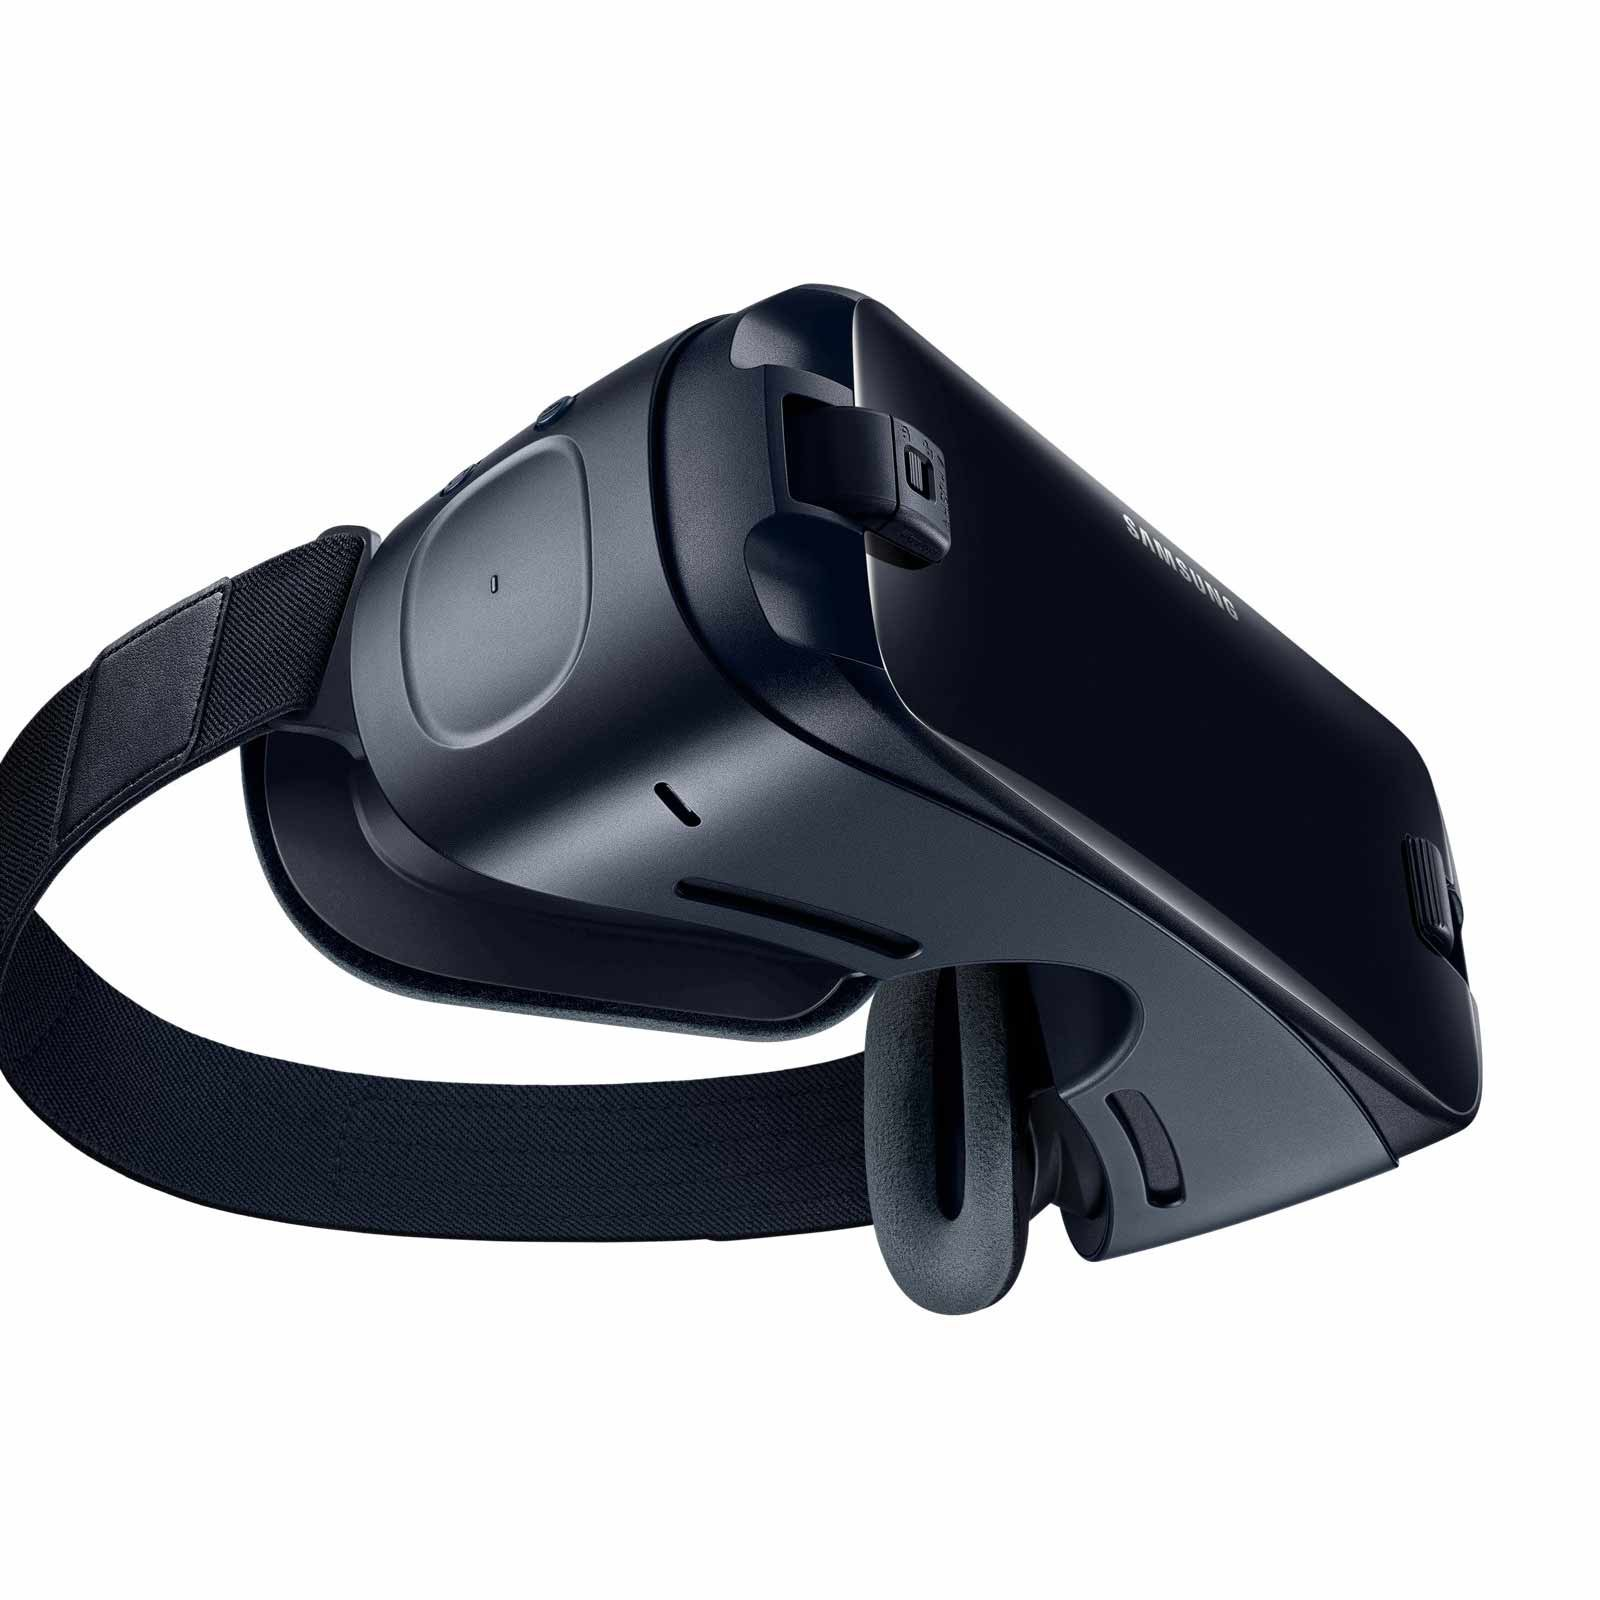 Samsung Gear VR (2017 Edition) with Controller Virtual Reality Headset SM-R325 for Galaxy S8, S8+, S7, S7 edge, Note5, Note 8, S6 edge+, S6, S6 edge (International Version, No Warranty) by Samsung (Image #5)